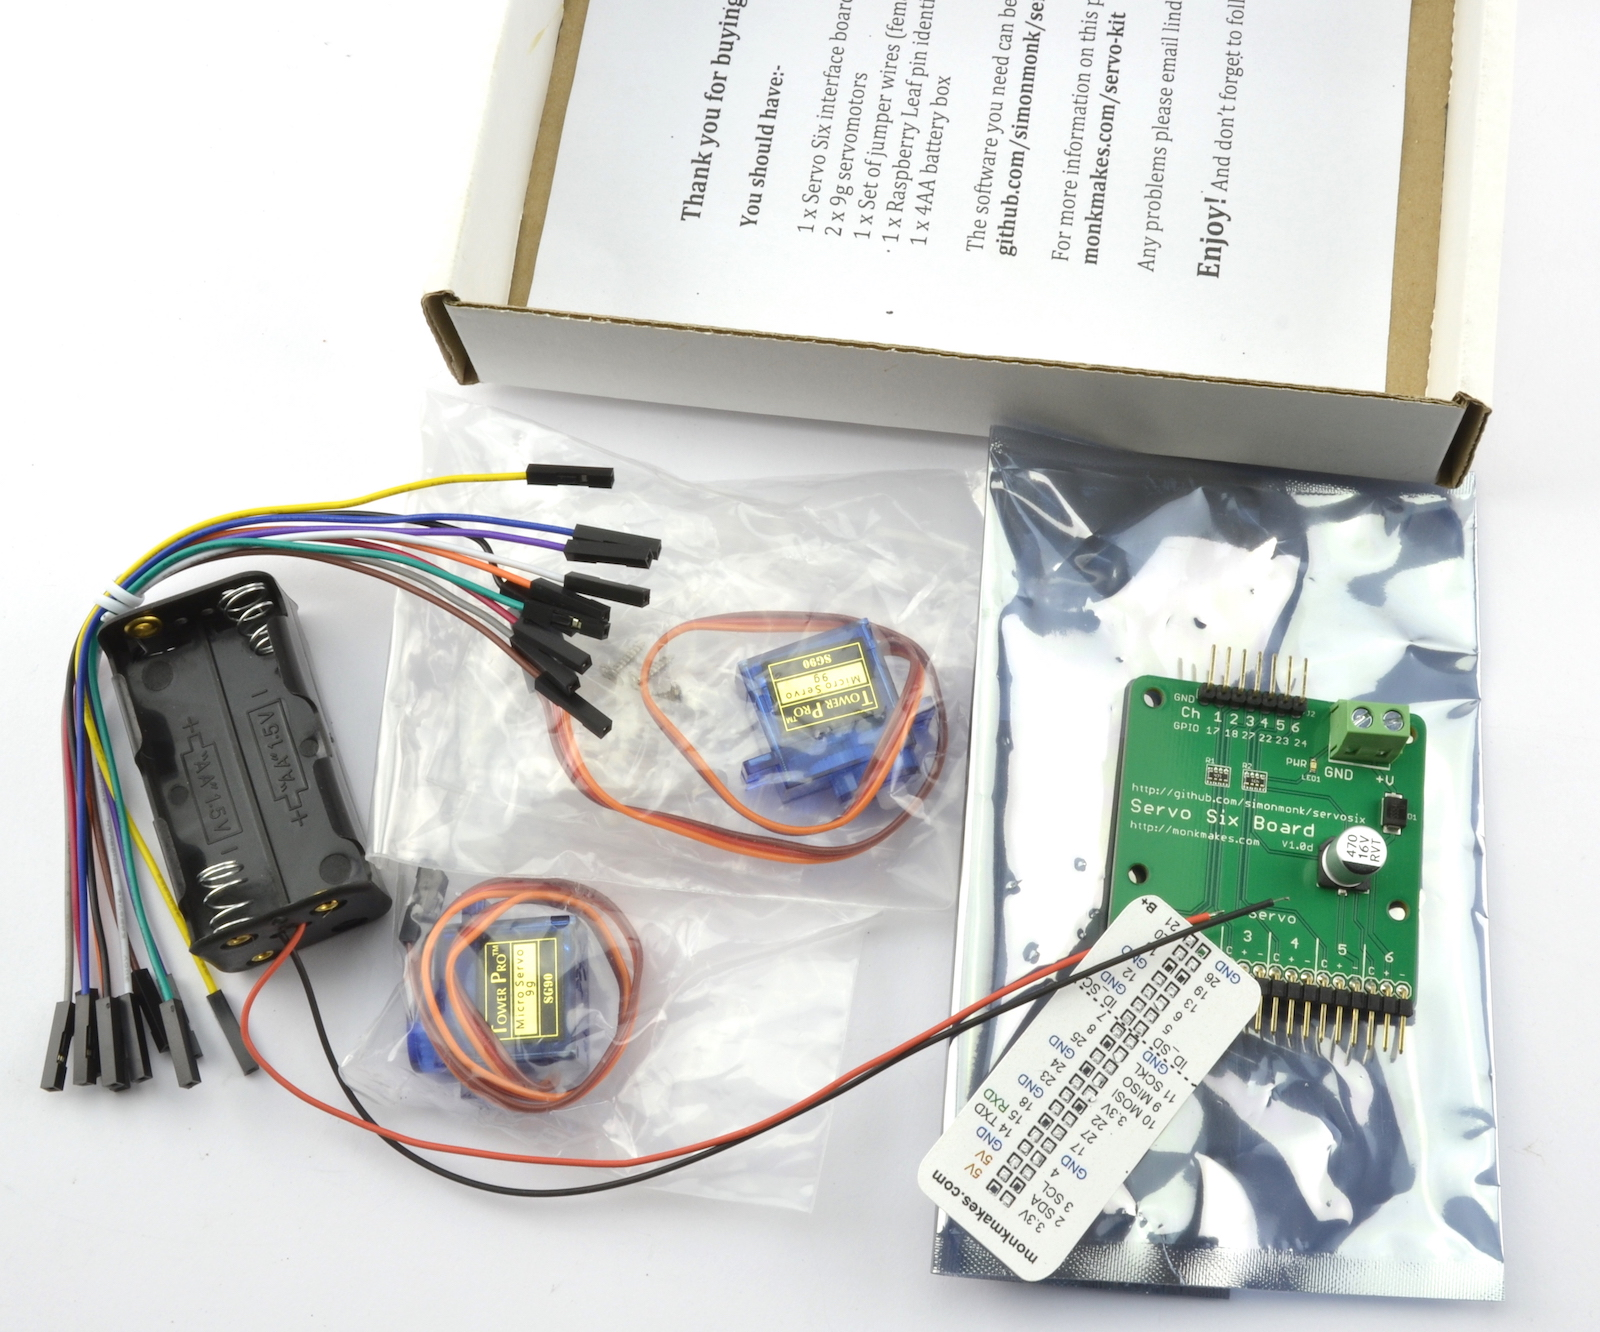 box_contents_1 web